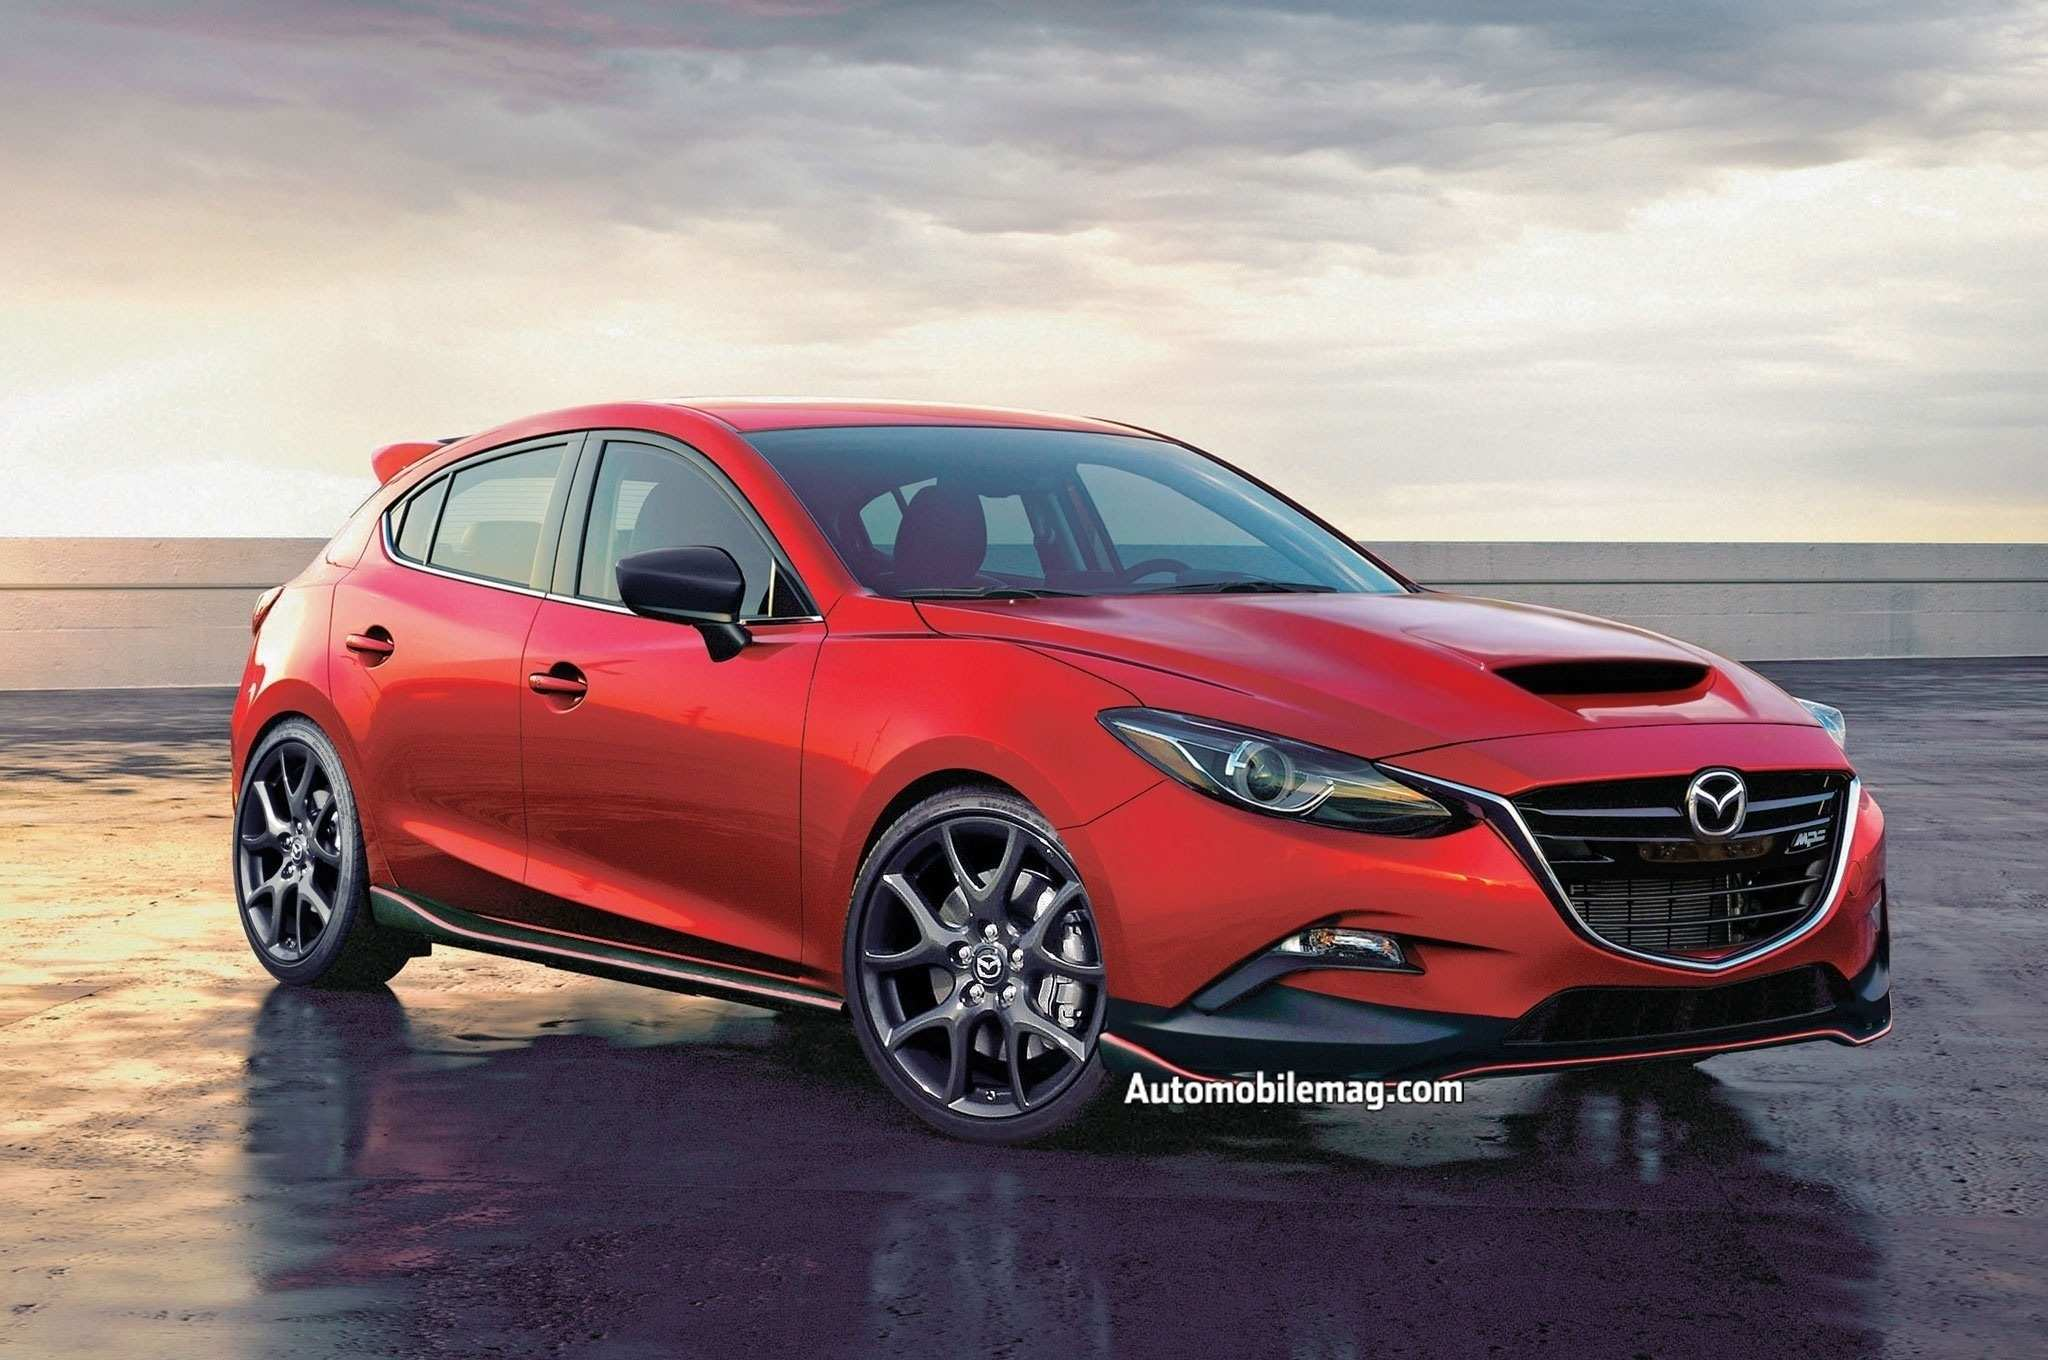 73 Great Mazdaspeed 2020 Picture for Mazdaspeed 2020